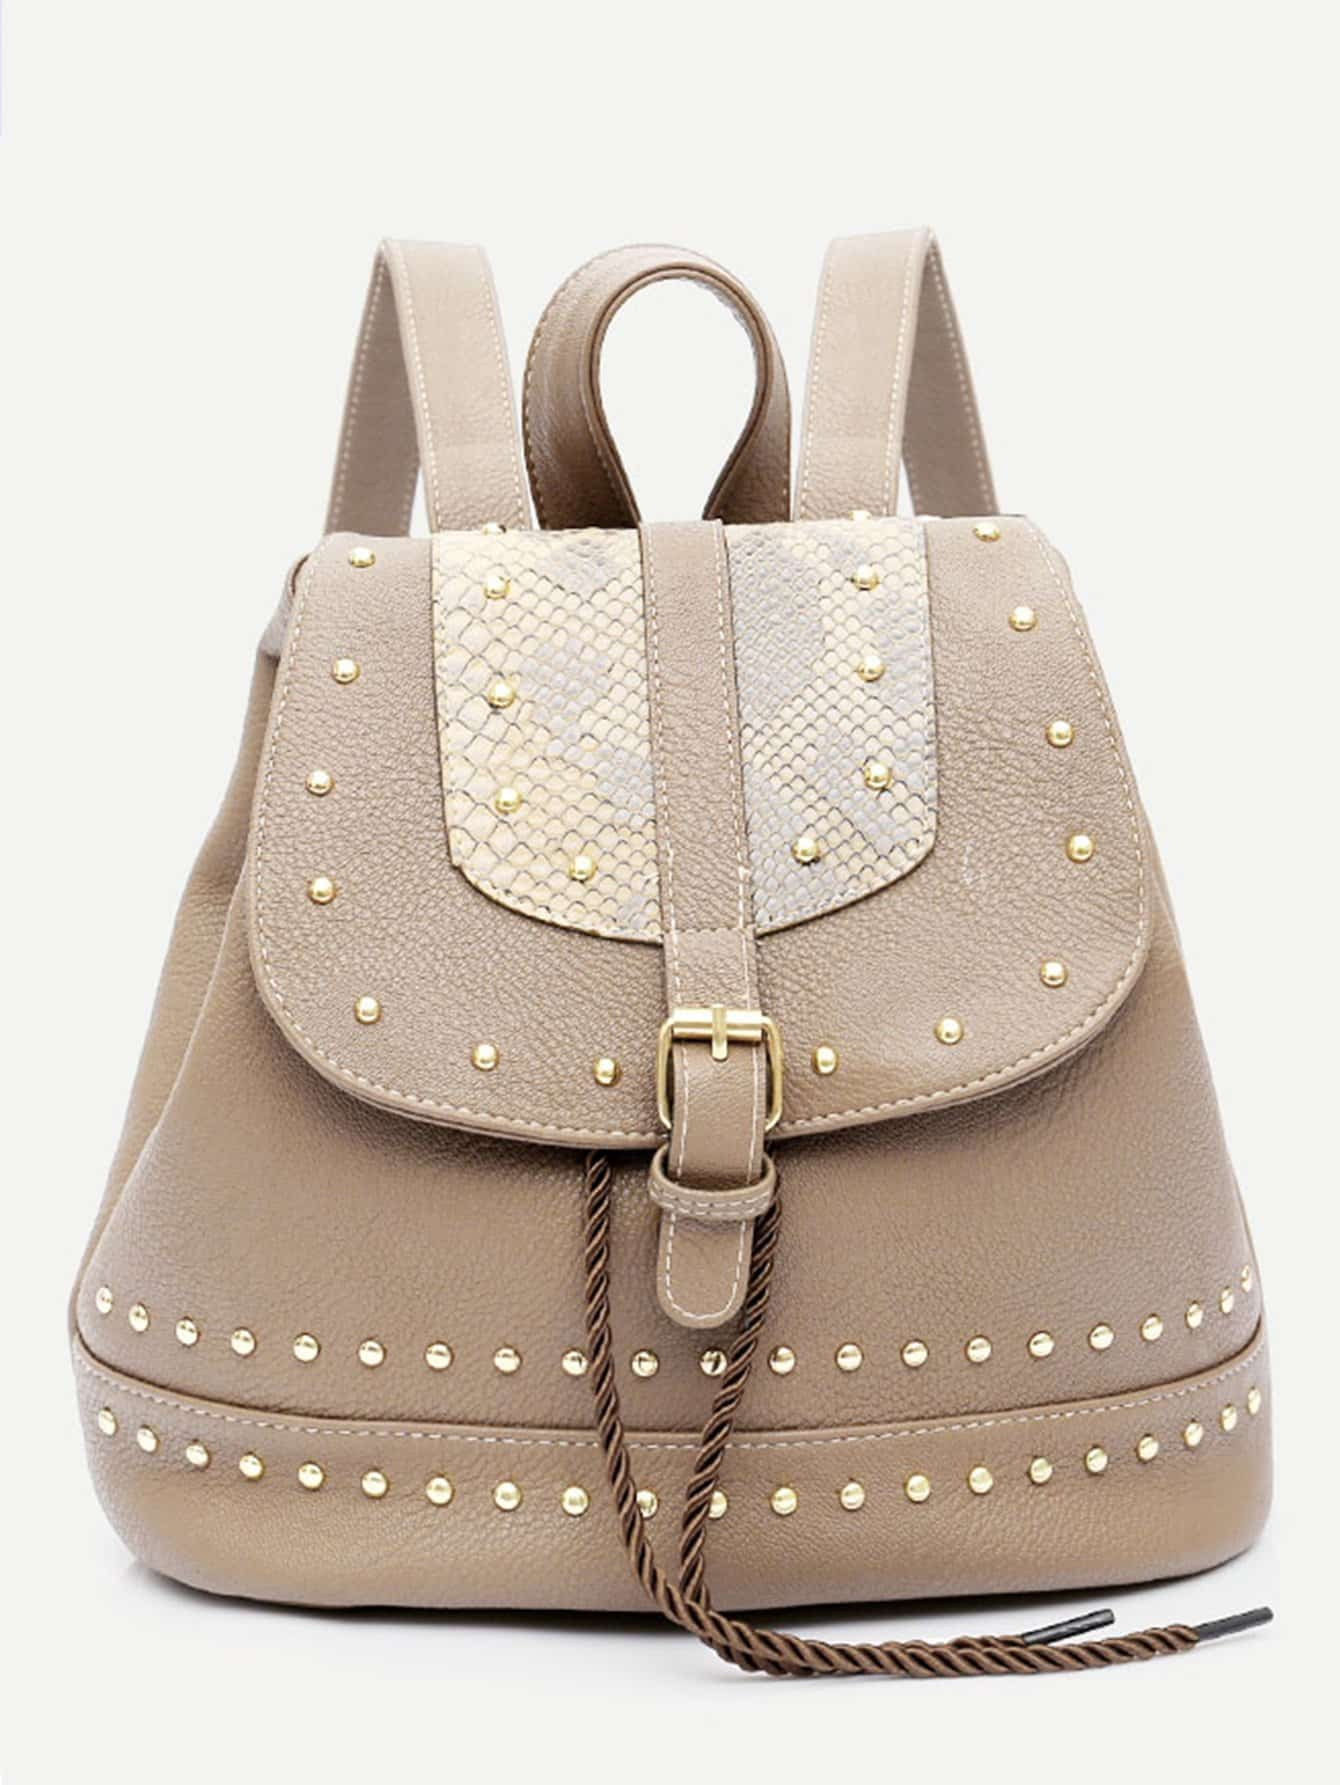 Buckle Detail Studded Backpack studded detail buckle decor chain bag